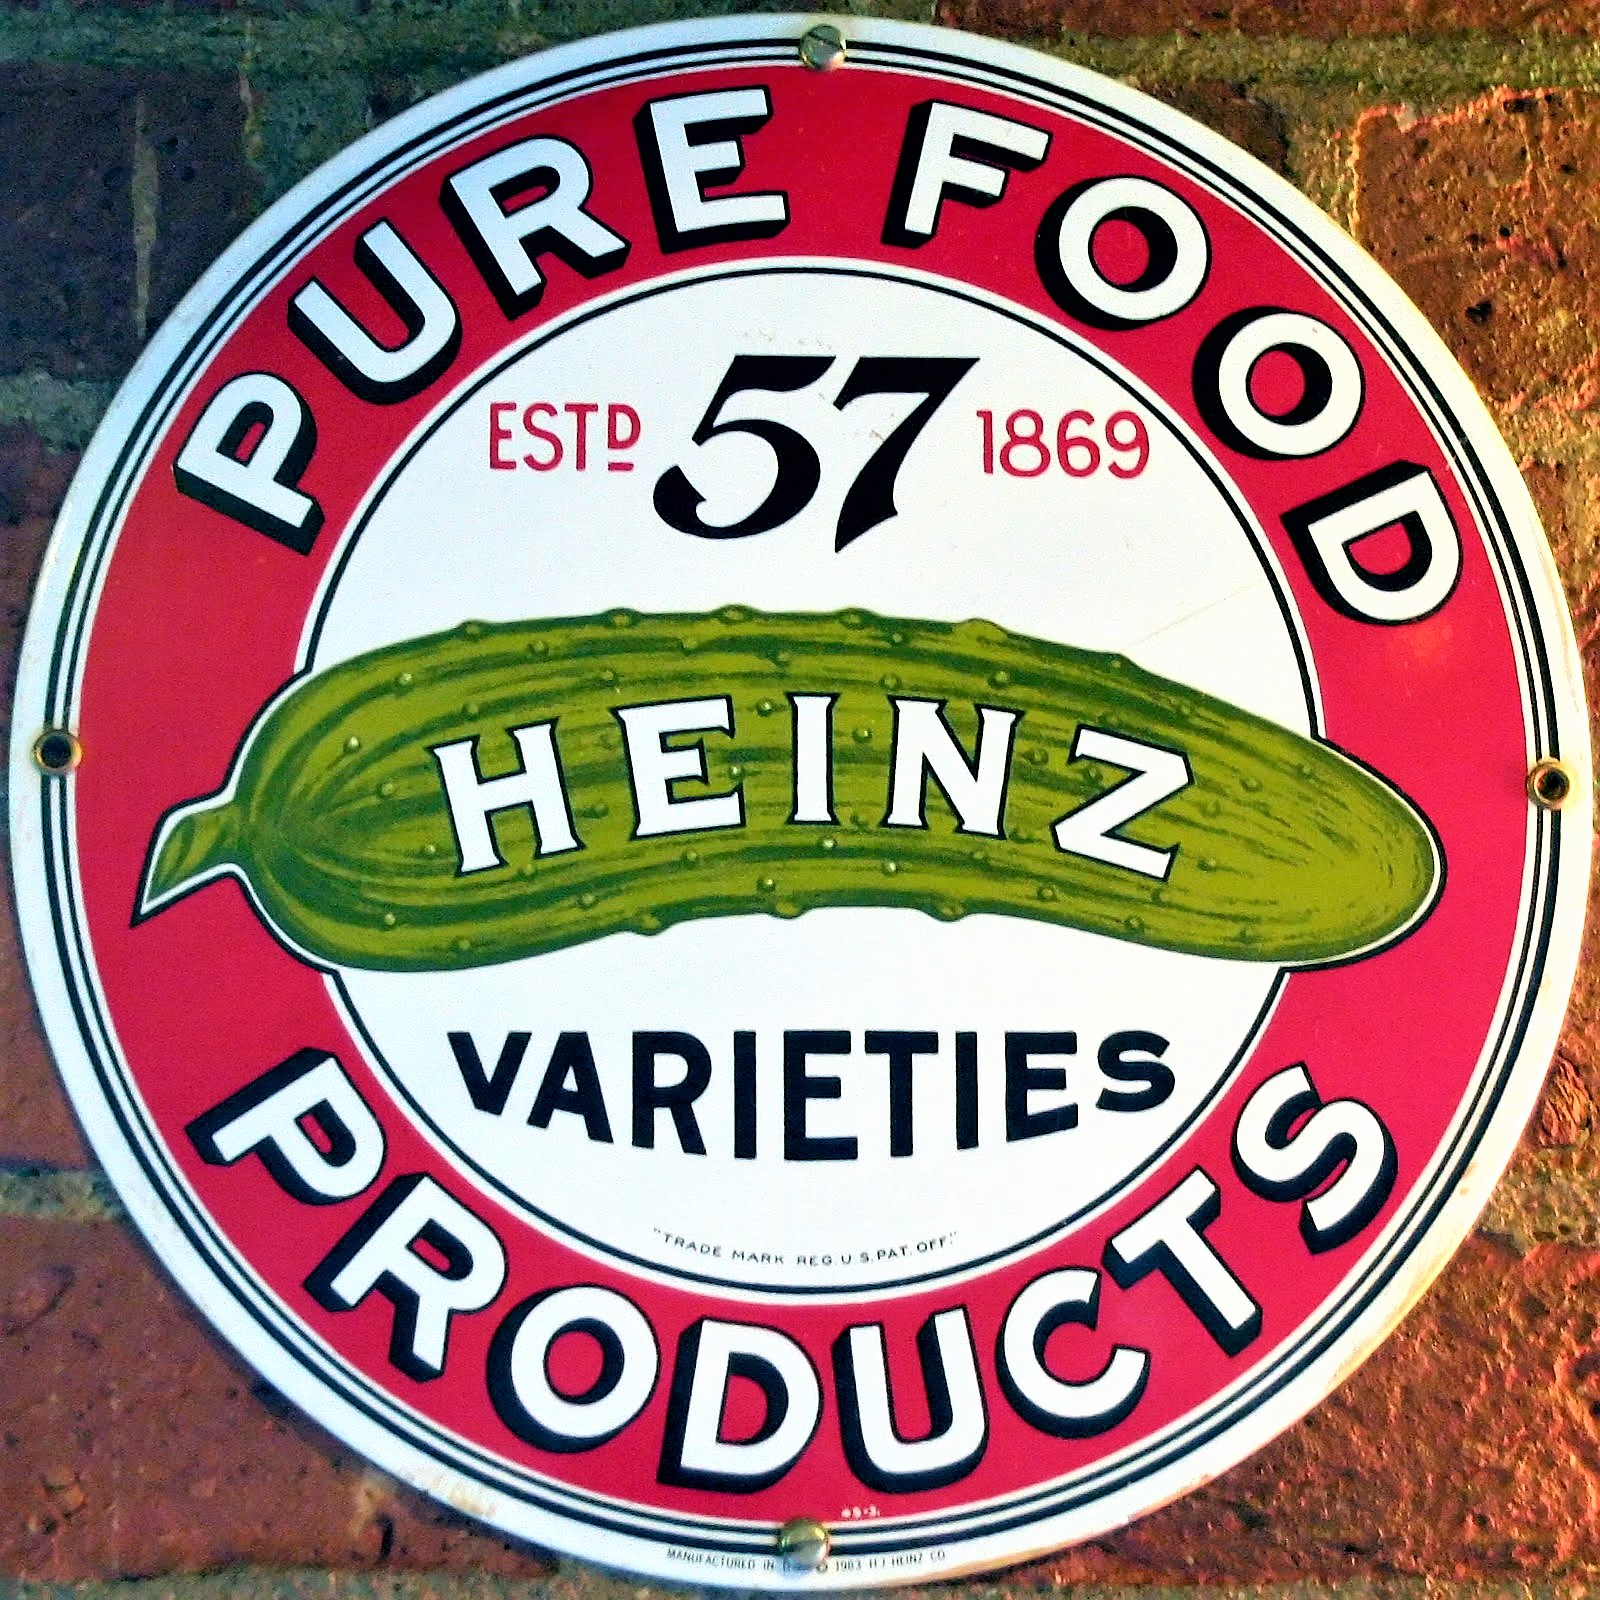 The 57 in 57 Varieties of Heinz Has No Real Meaning